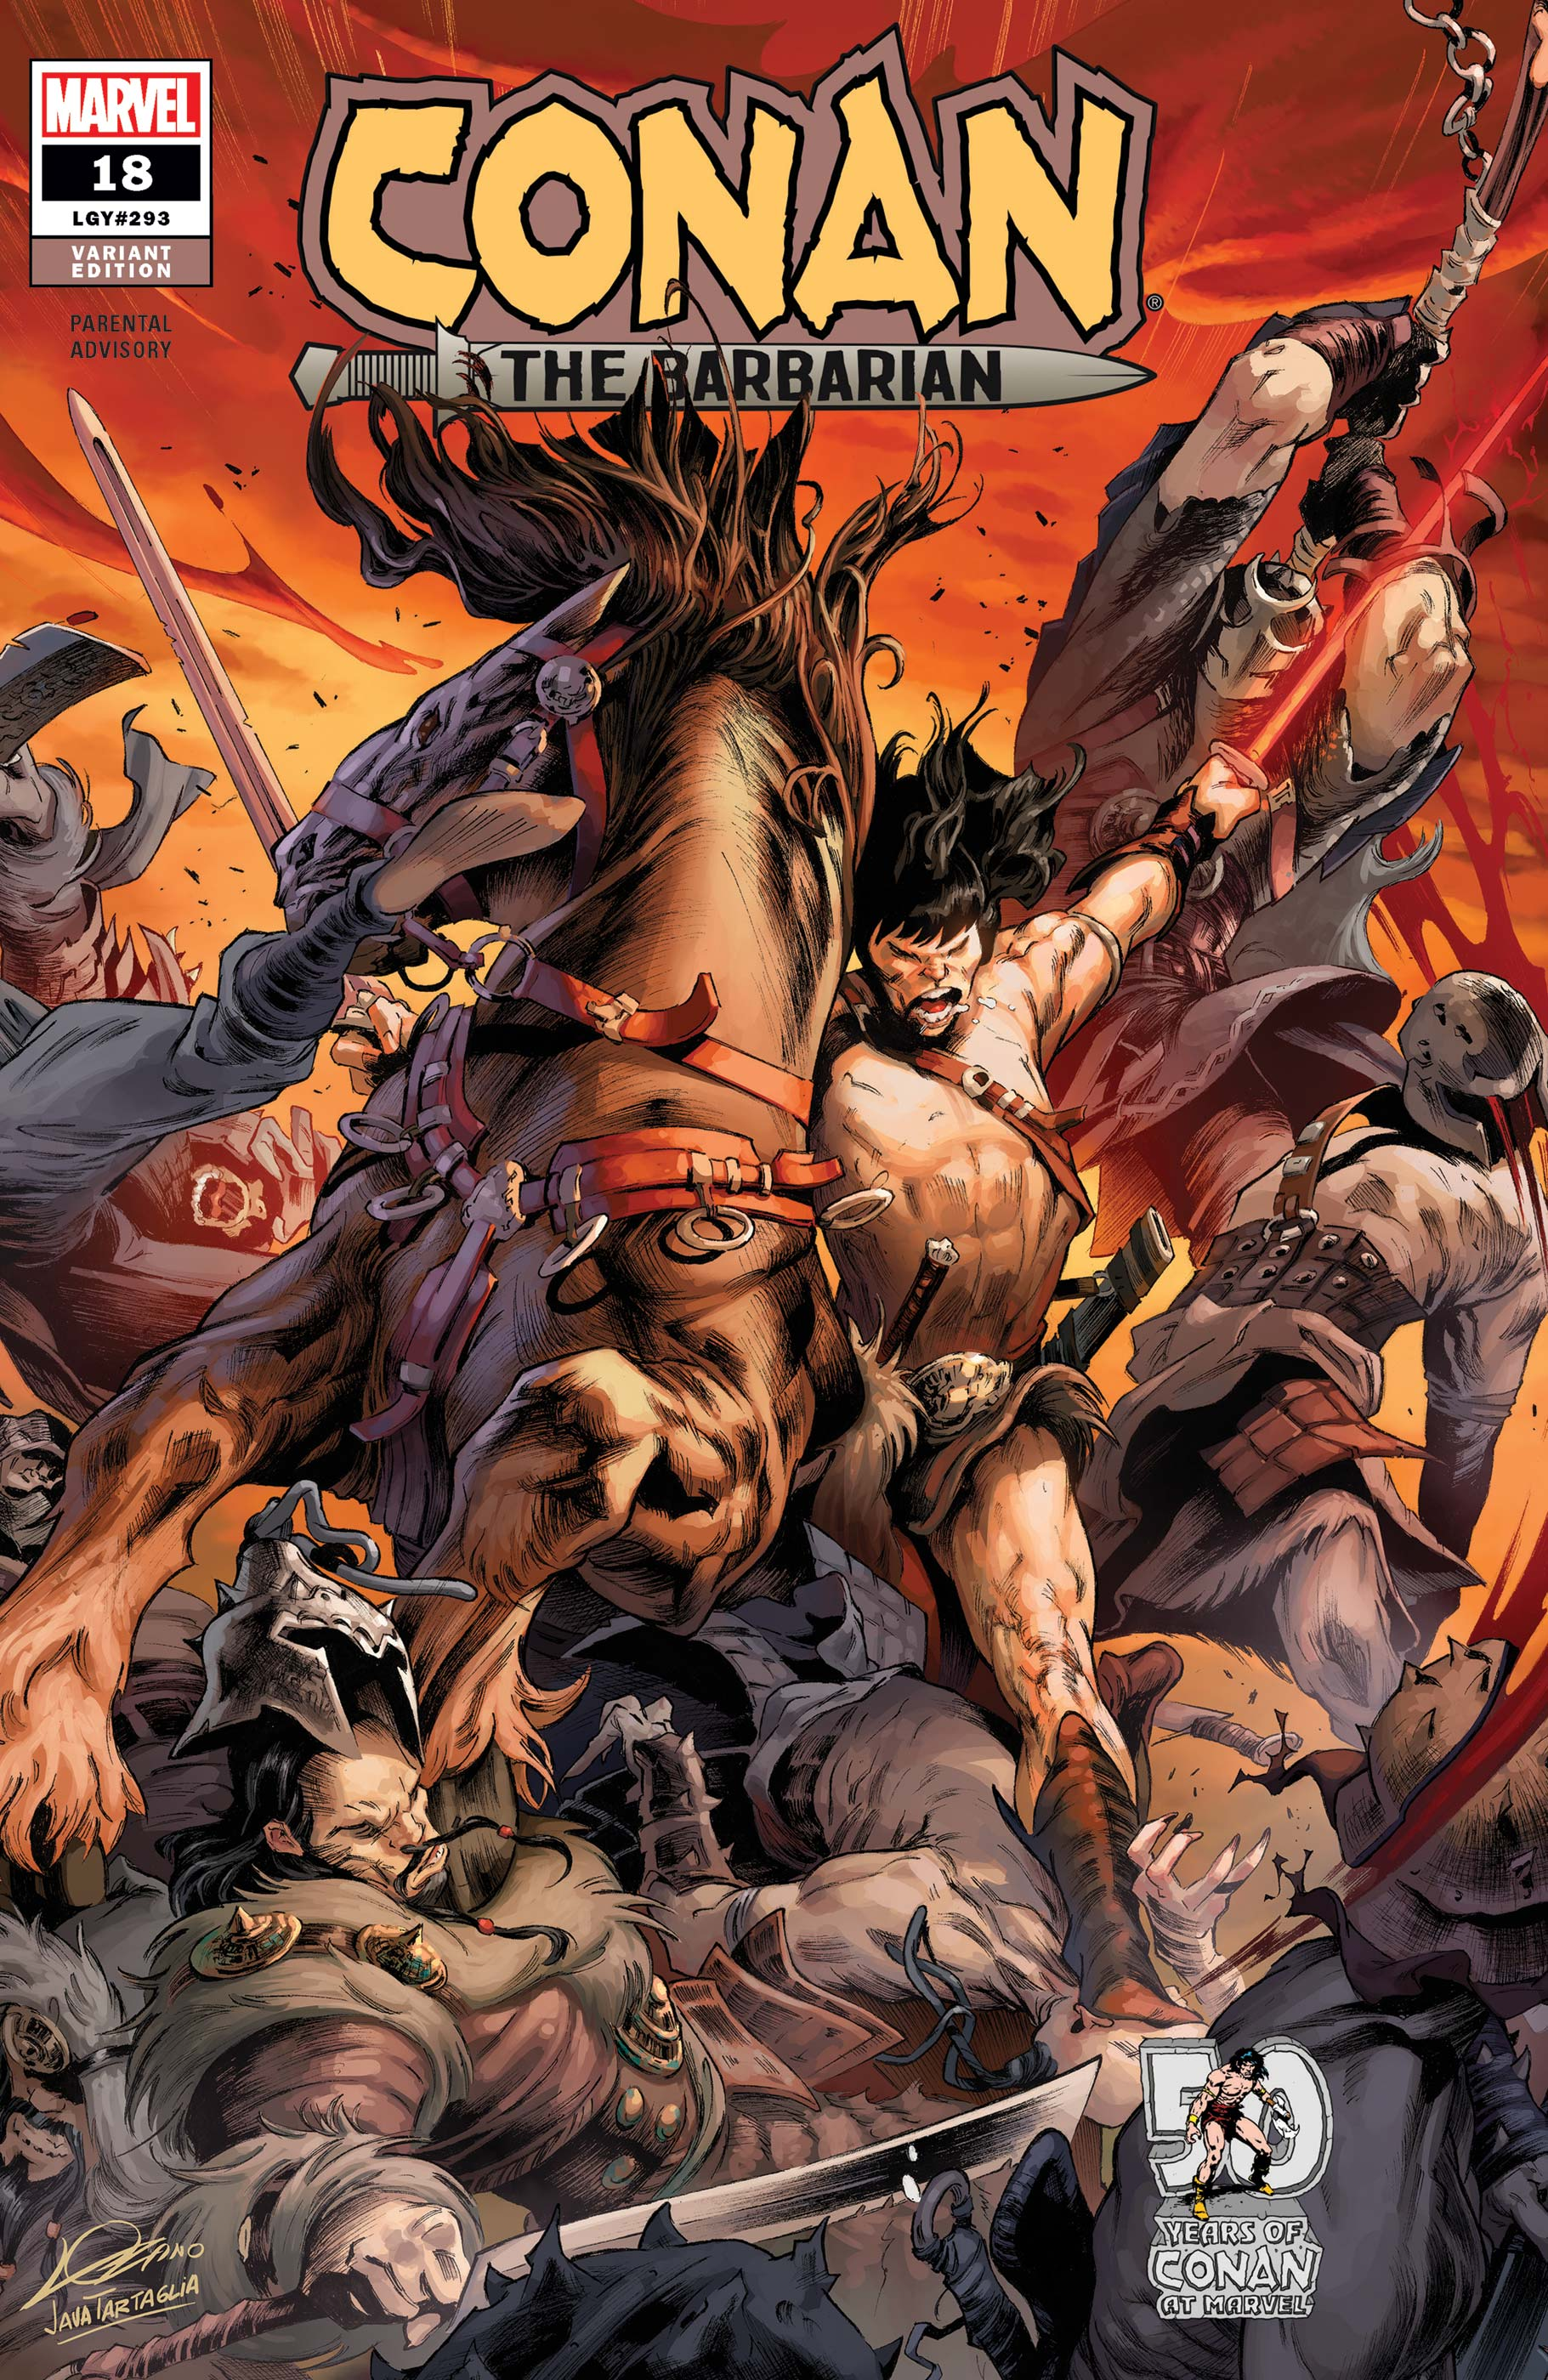 Conan the Barbarian (2019) #18 (Variant)